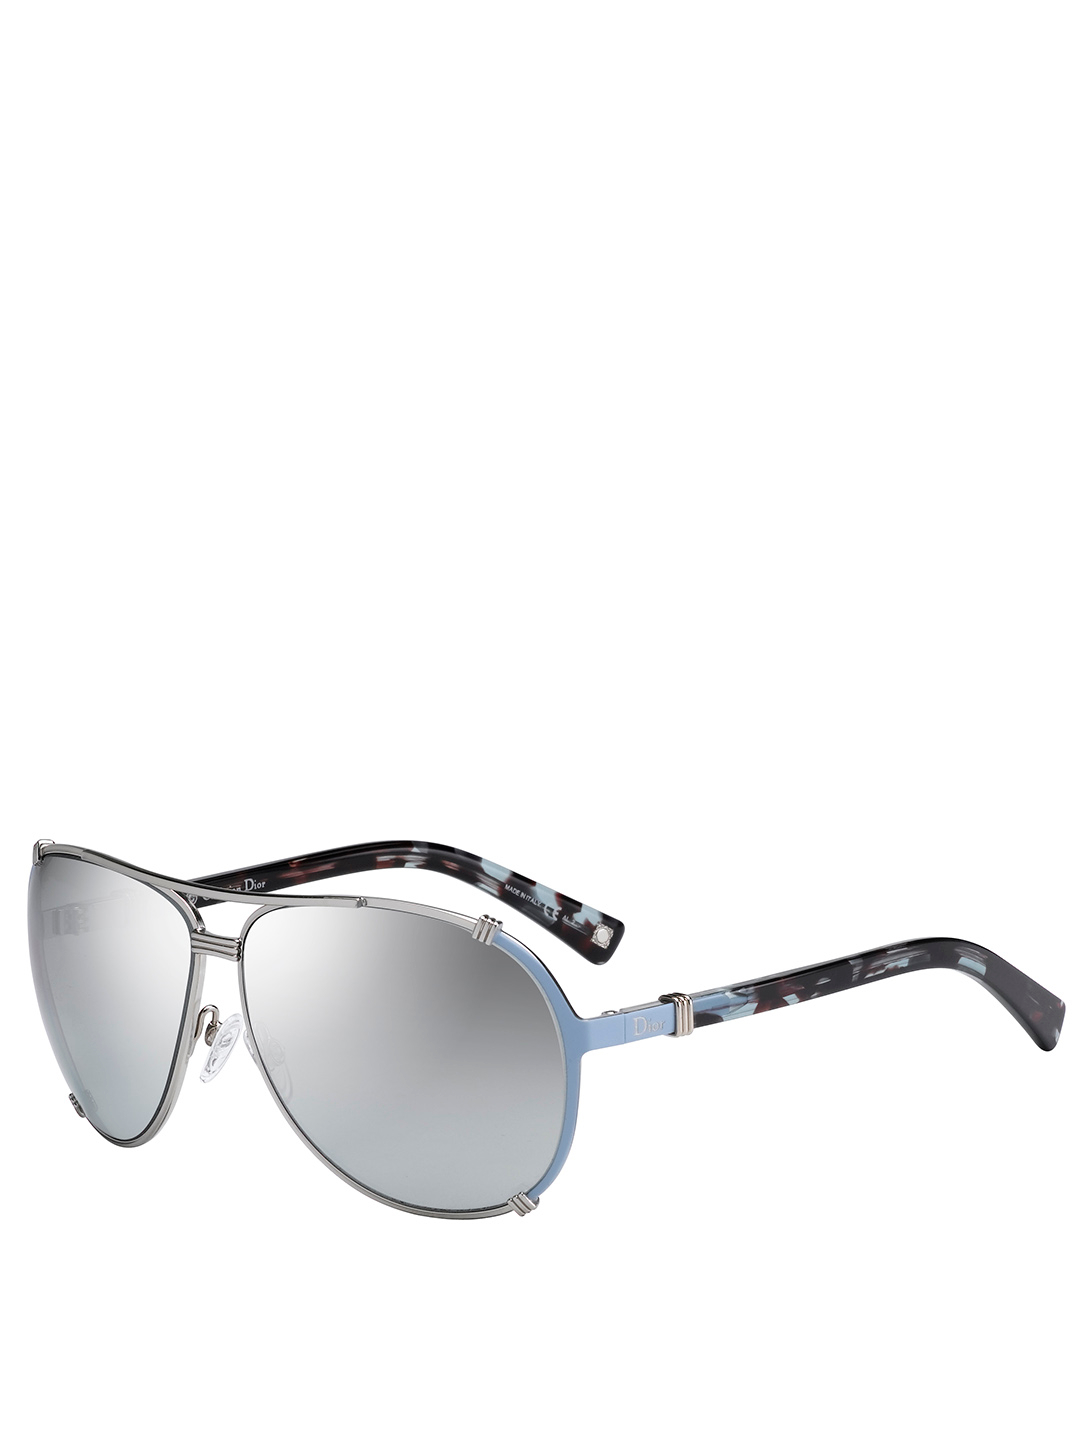 DIOR DiorChicago2 Aviator Sunglasses Women's Blue